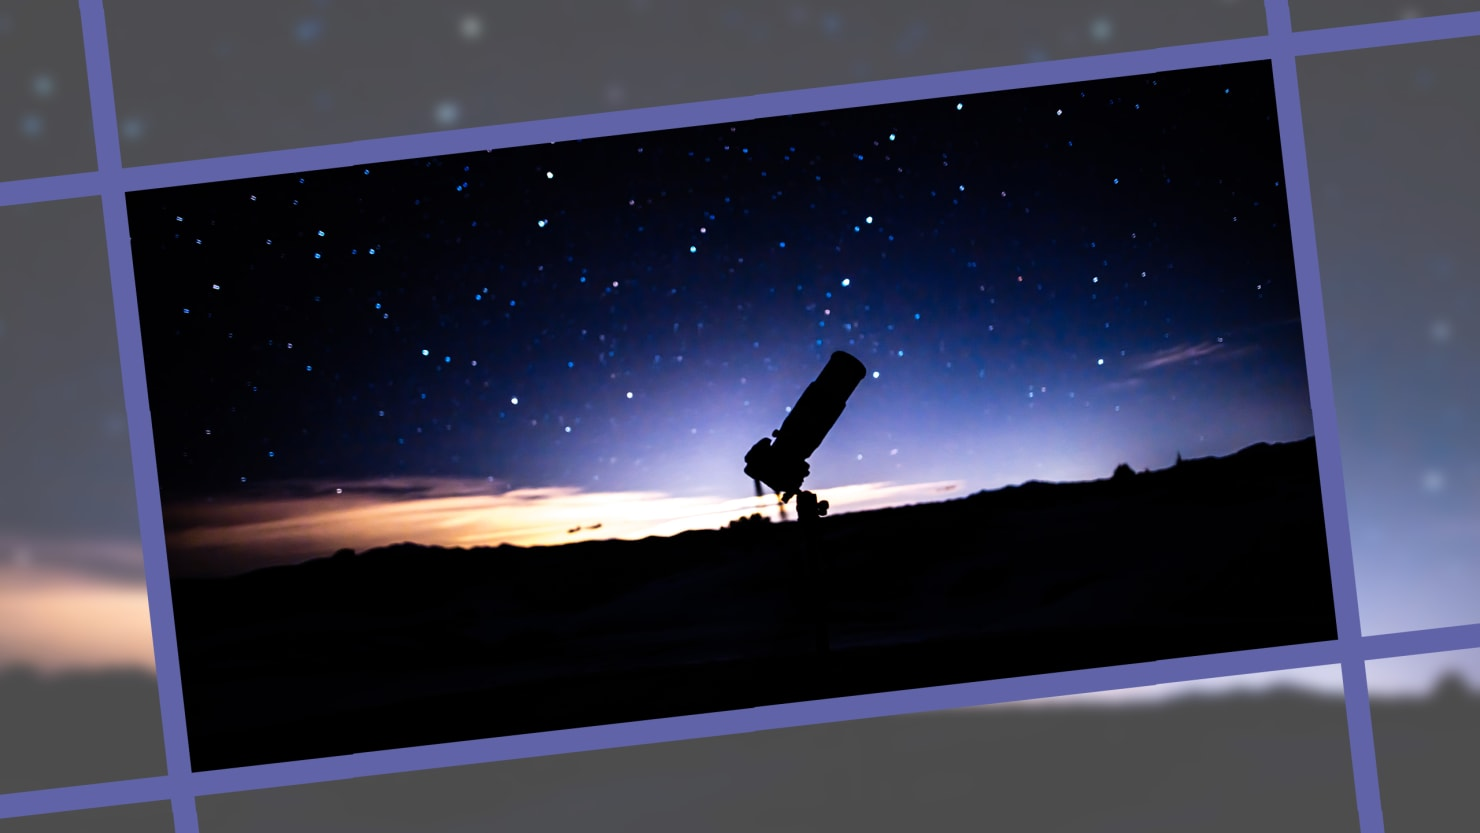 Stargaze Properly With One of these Best Selling Telescopes